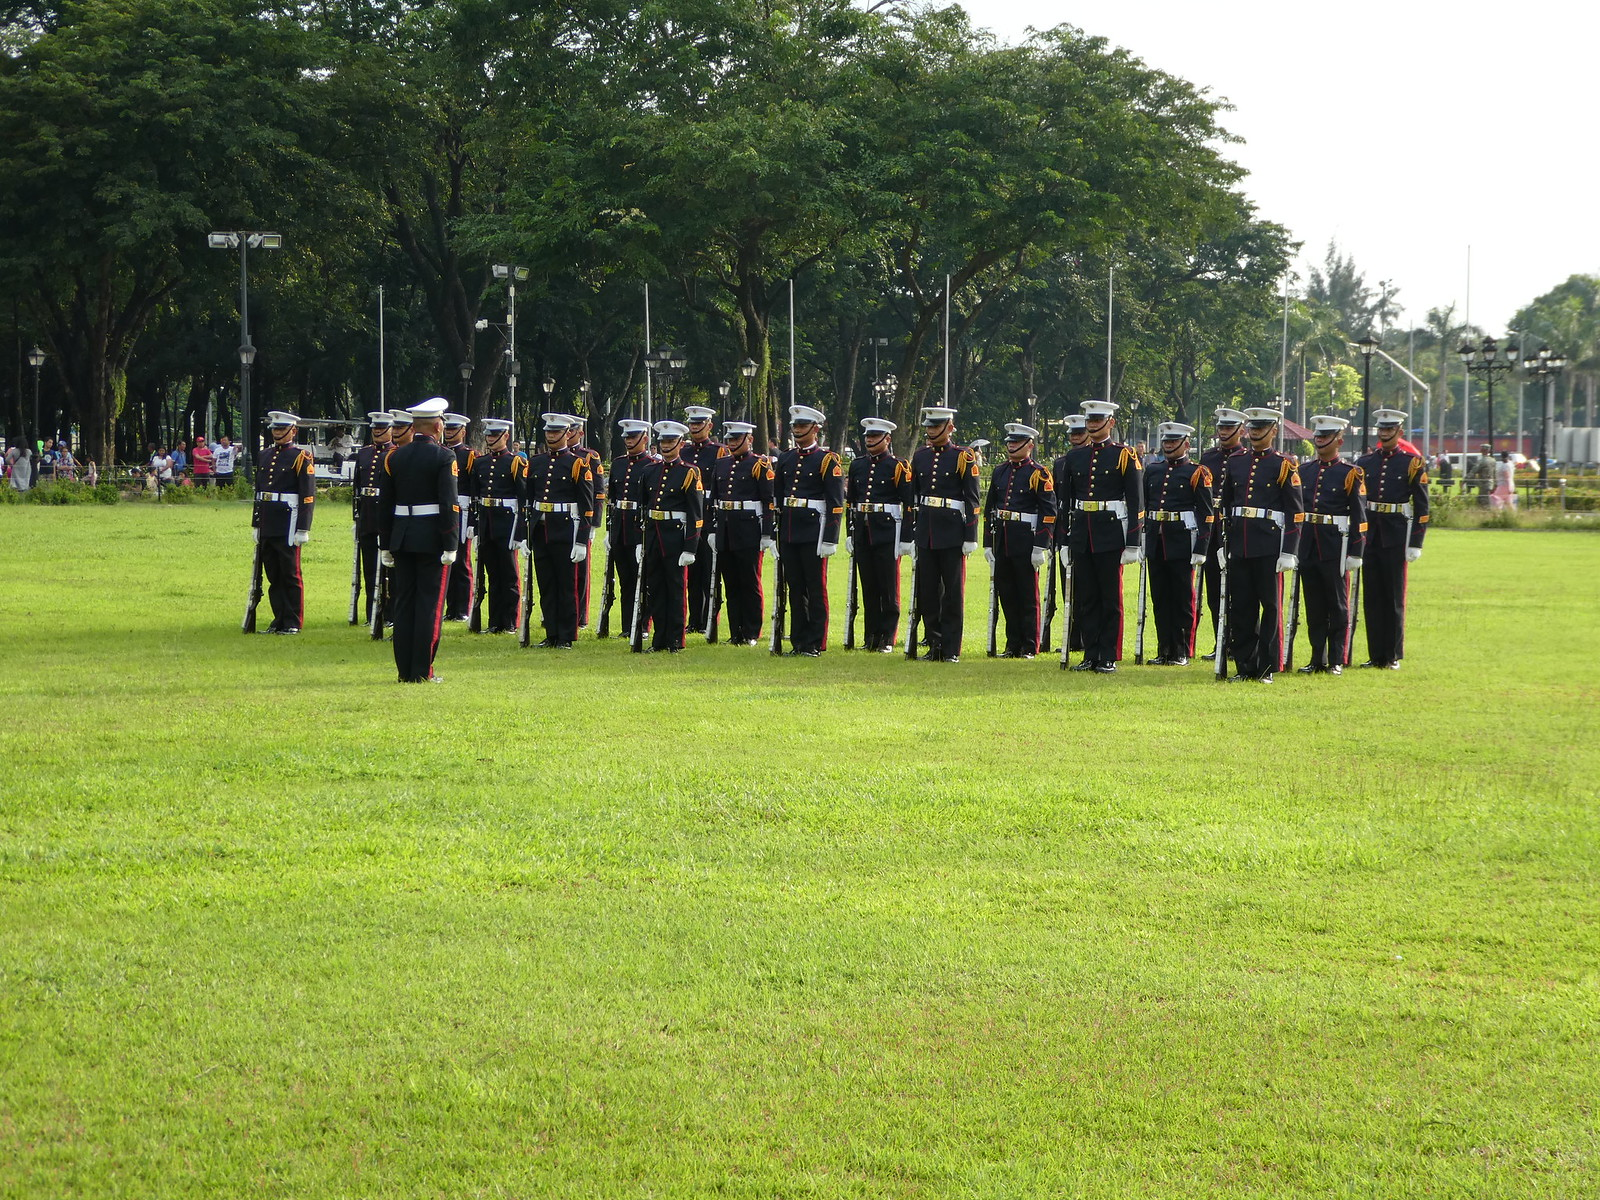 Changing of the guard ceremony in Rizal Park, Manila